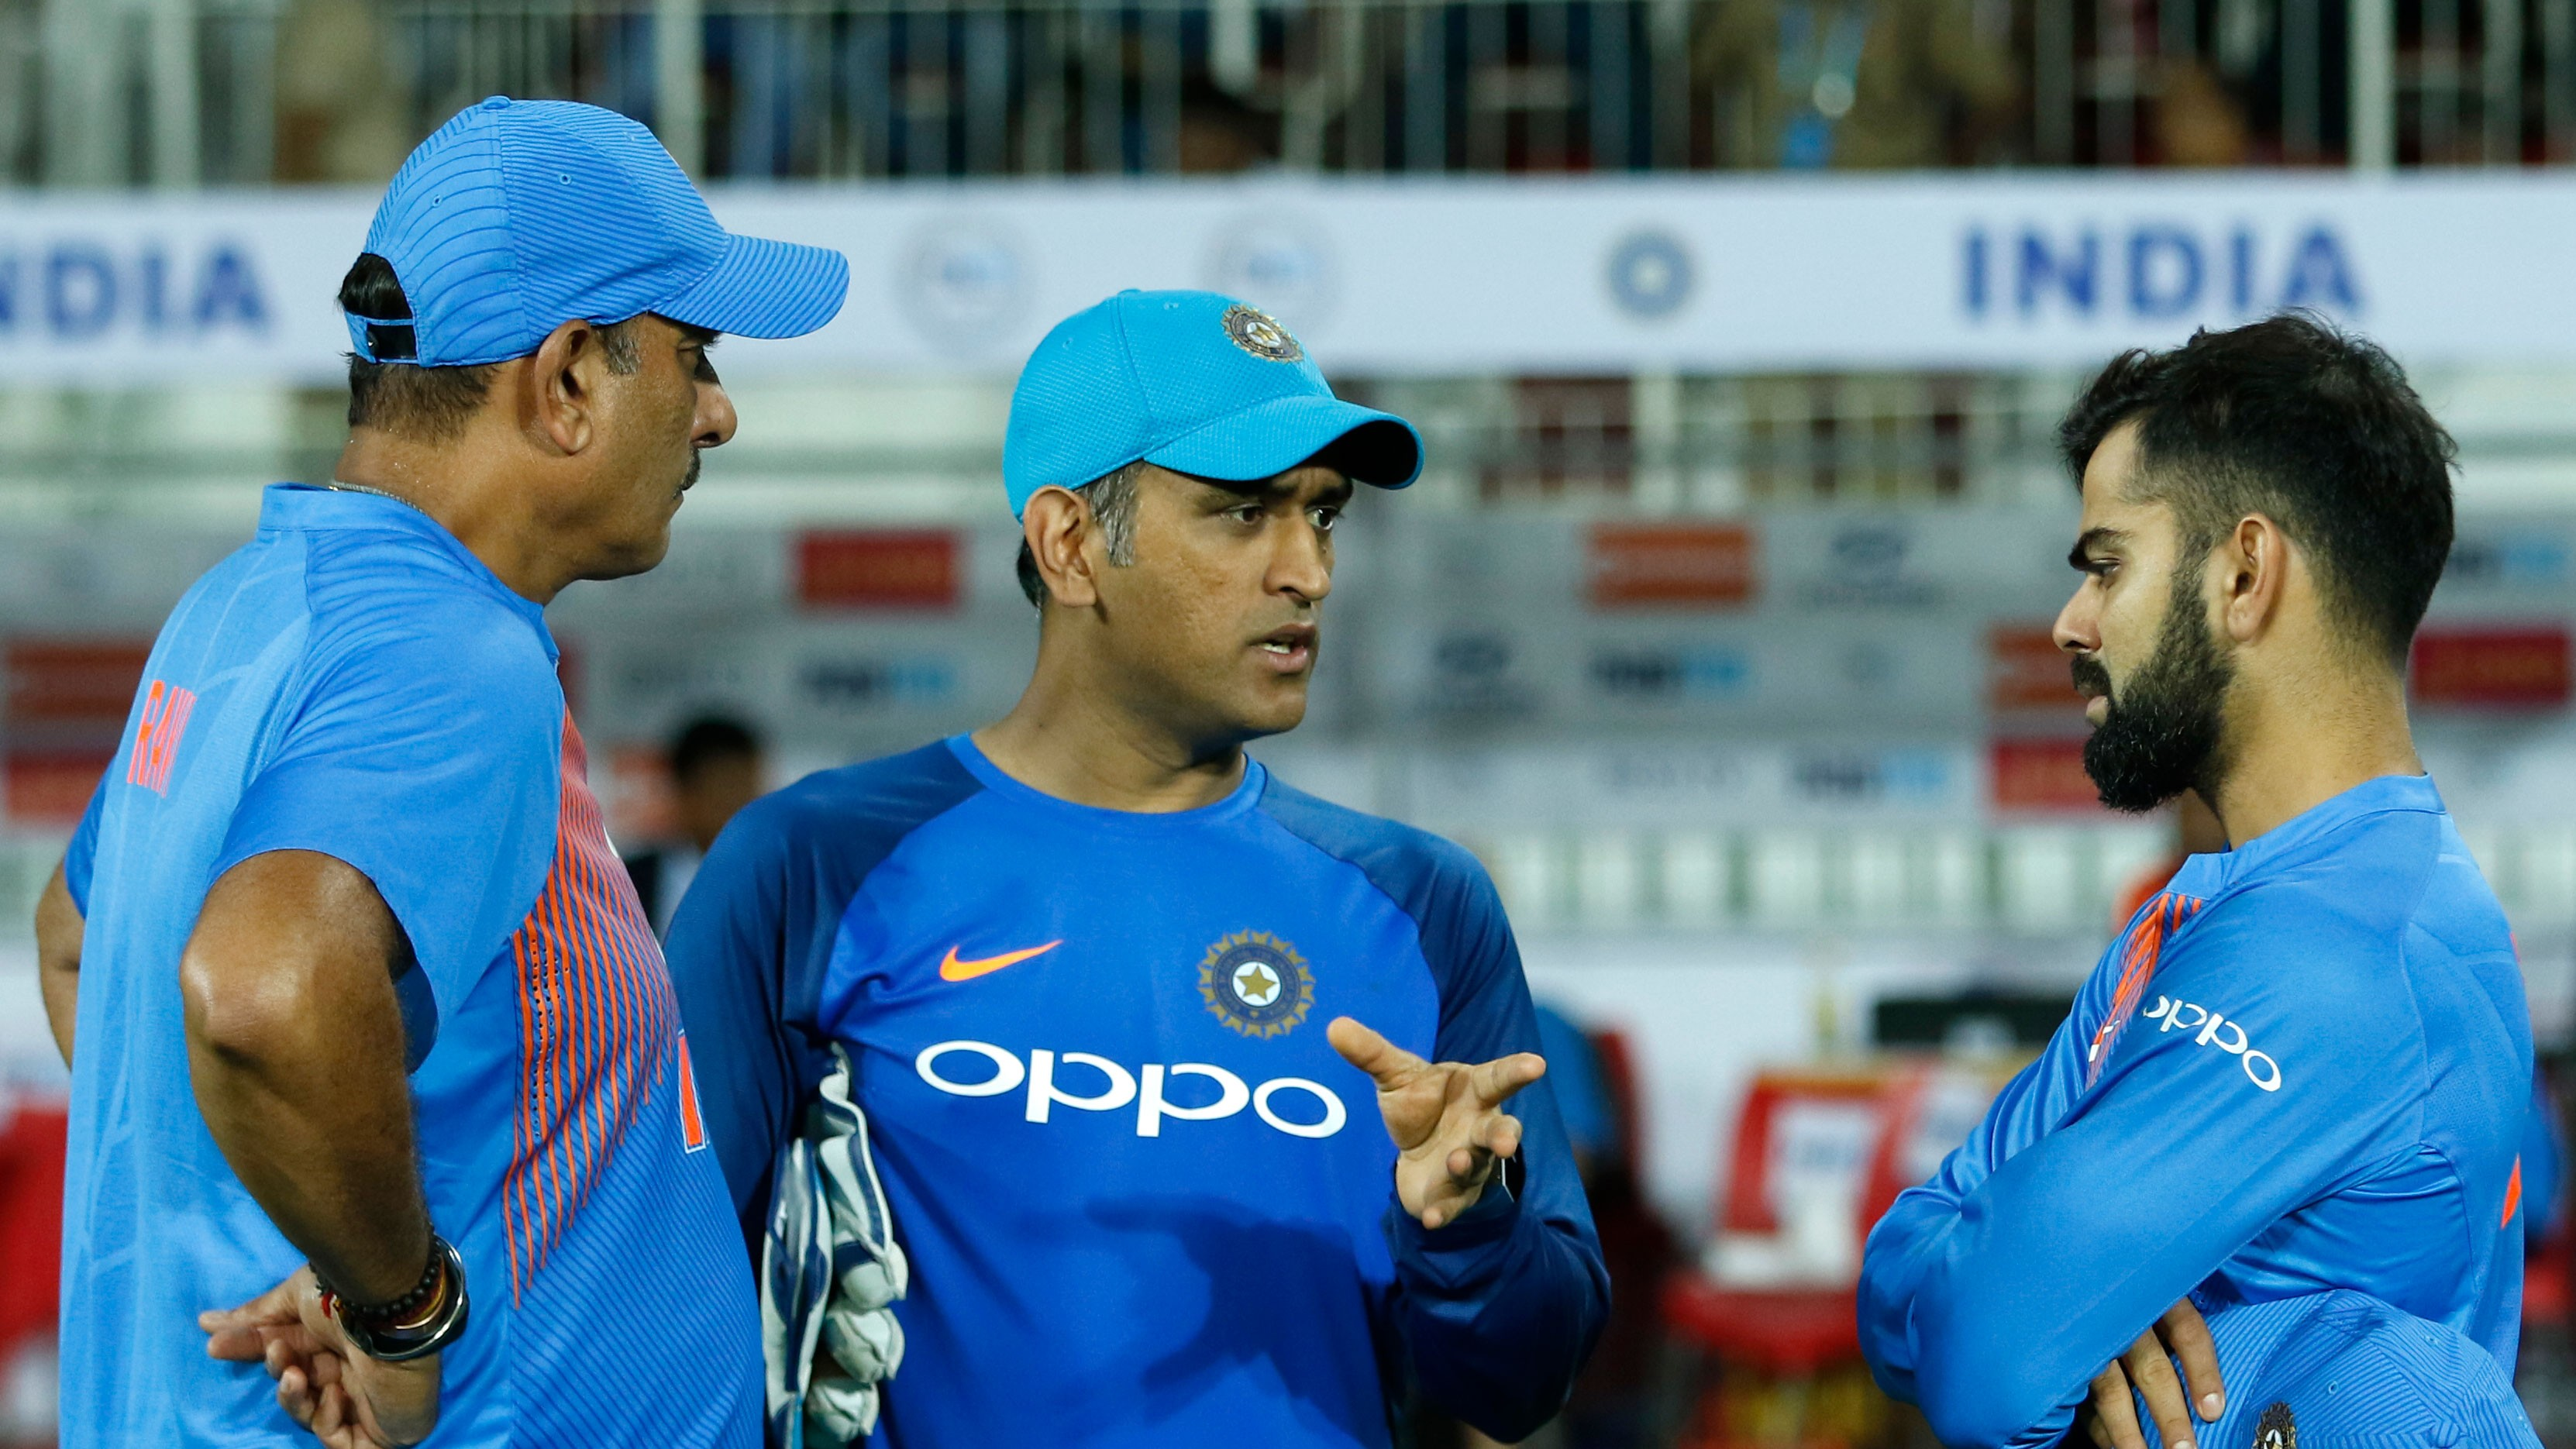 CWC 2019: Ravi Shastri talks how dressing room can learn from MS Dhoni and his equation with Virat Kohli